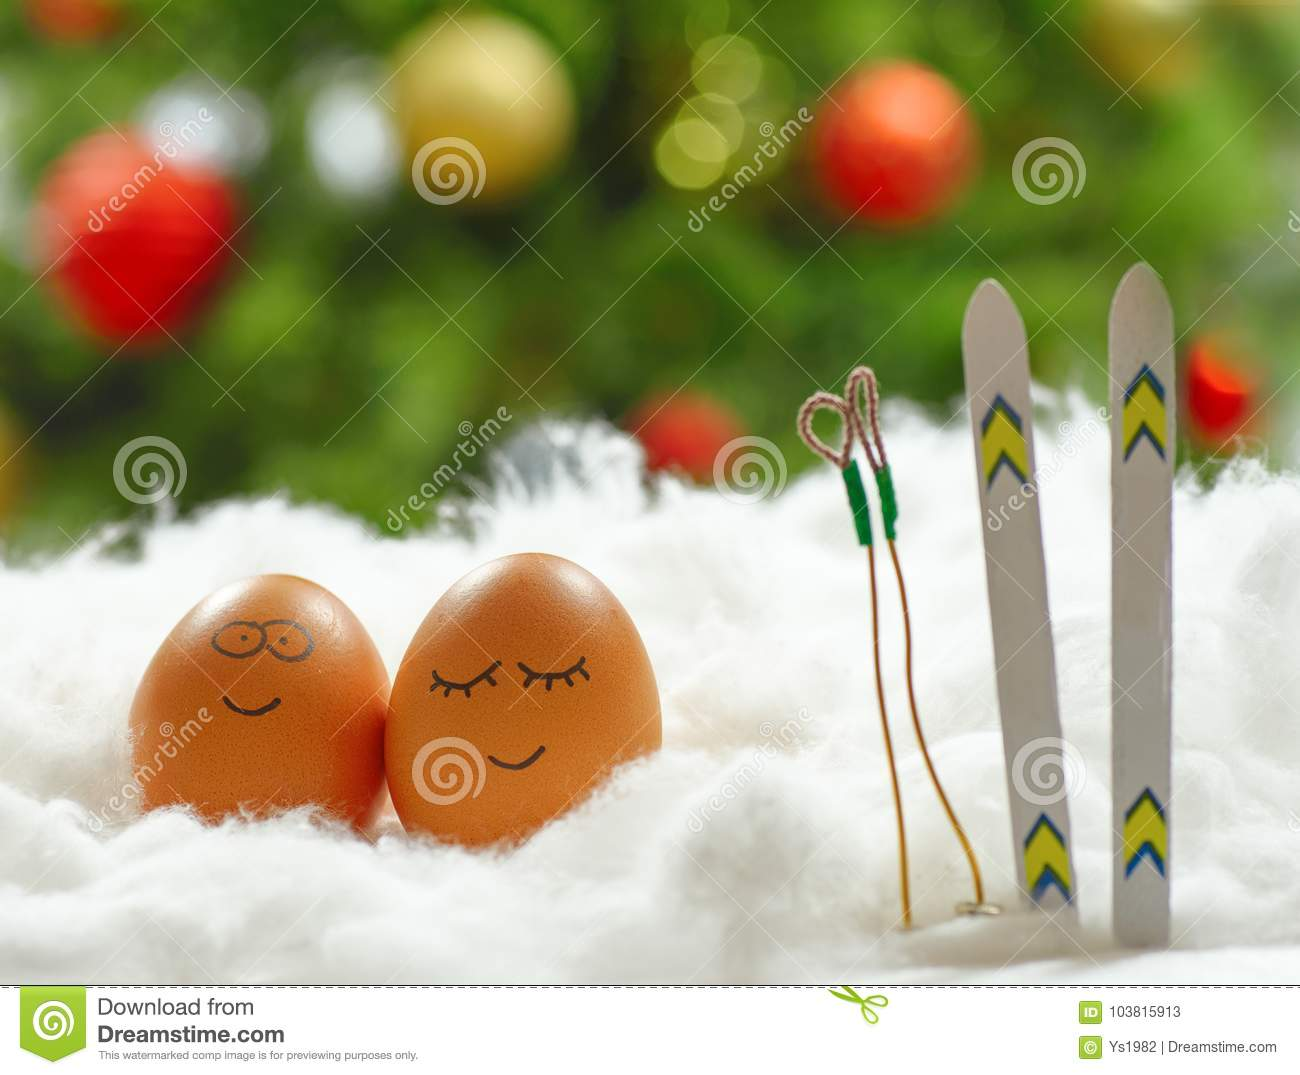 bb5d03a85a827 Funny Lovely Eggs With Ski In Snow Stock Image - Image of lovely ...